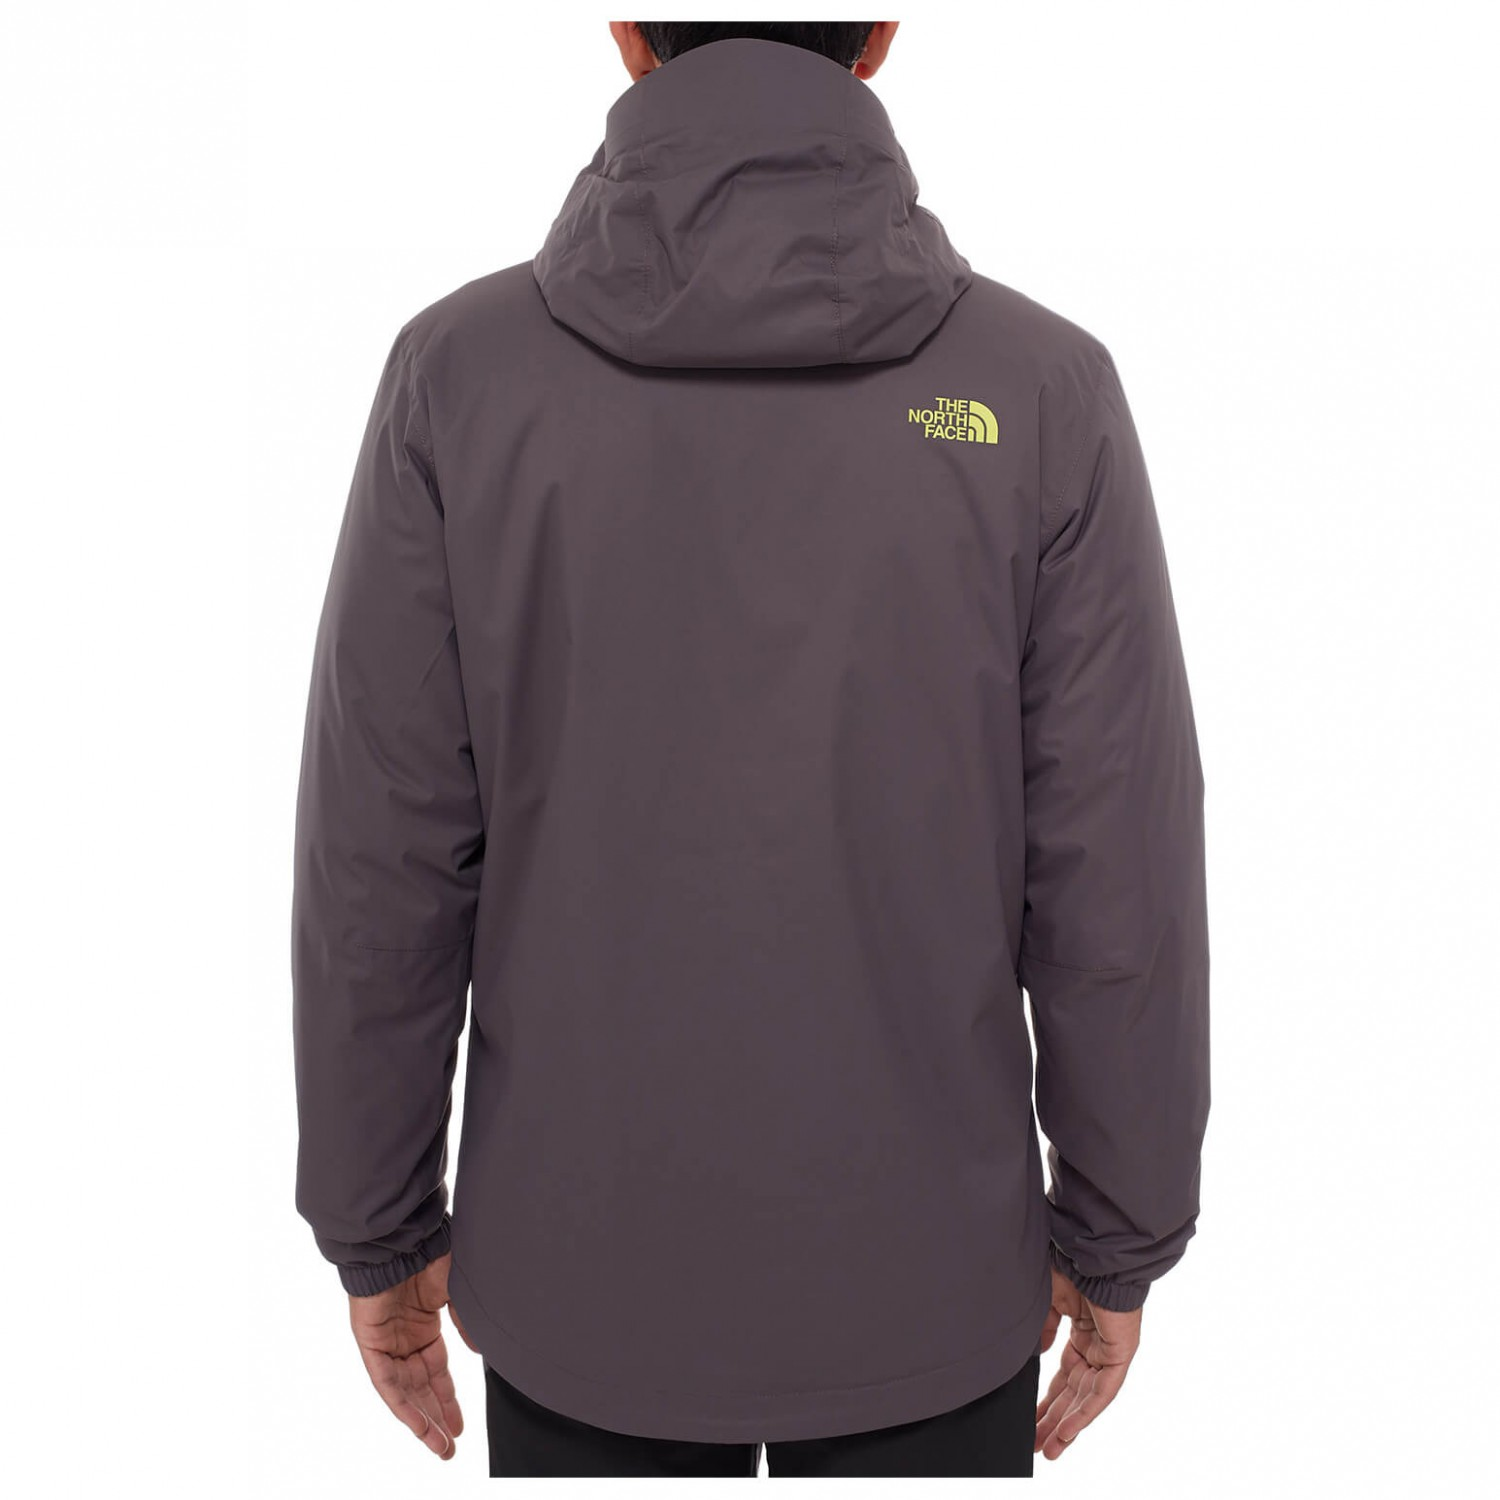 ... The North Face - Quest Insulated Jacket - Giacca invernale ... 843798e322de